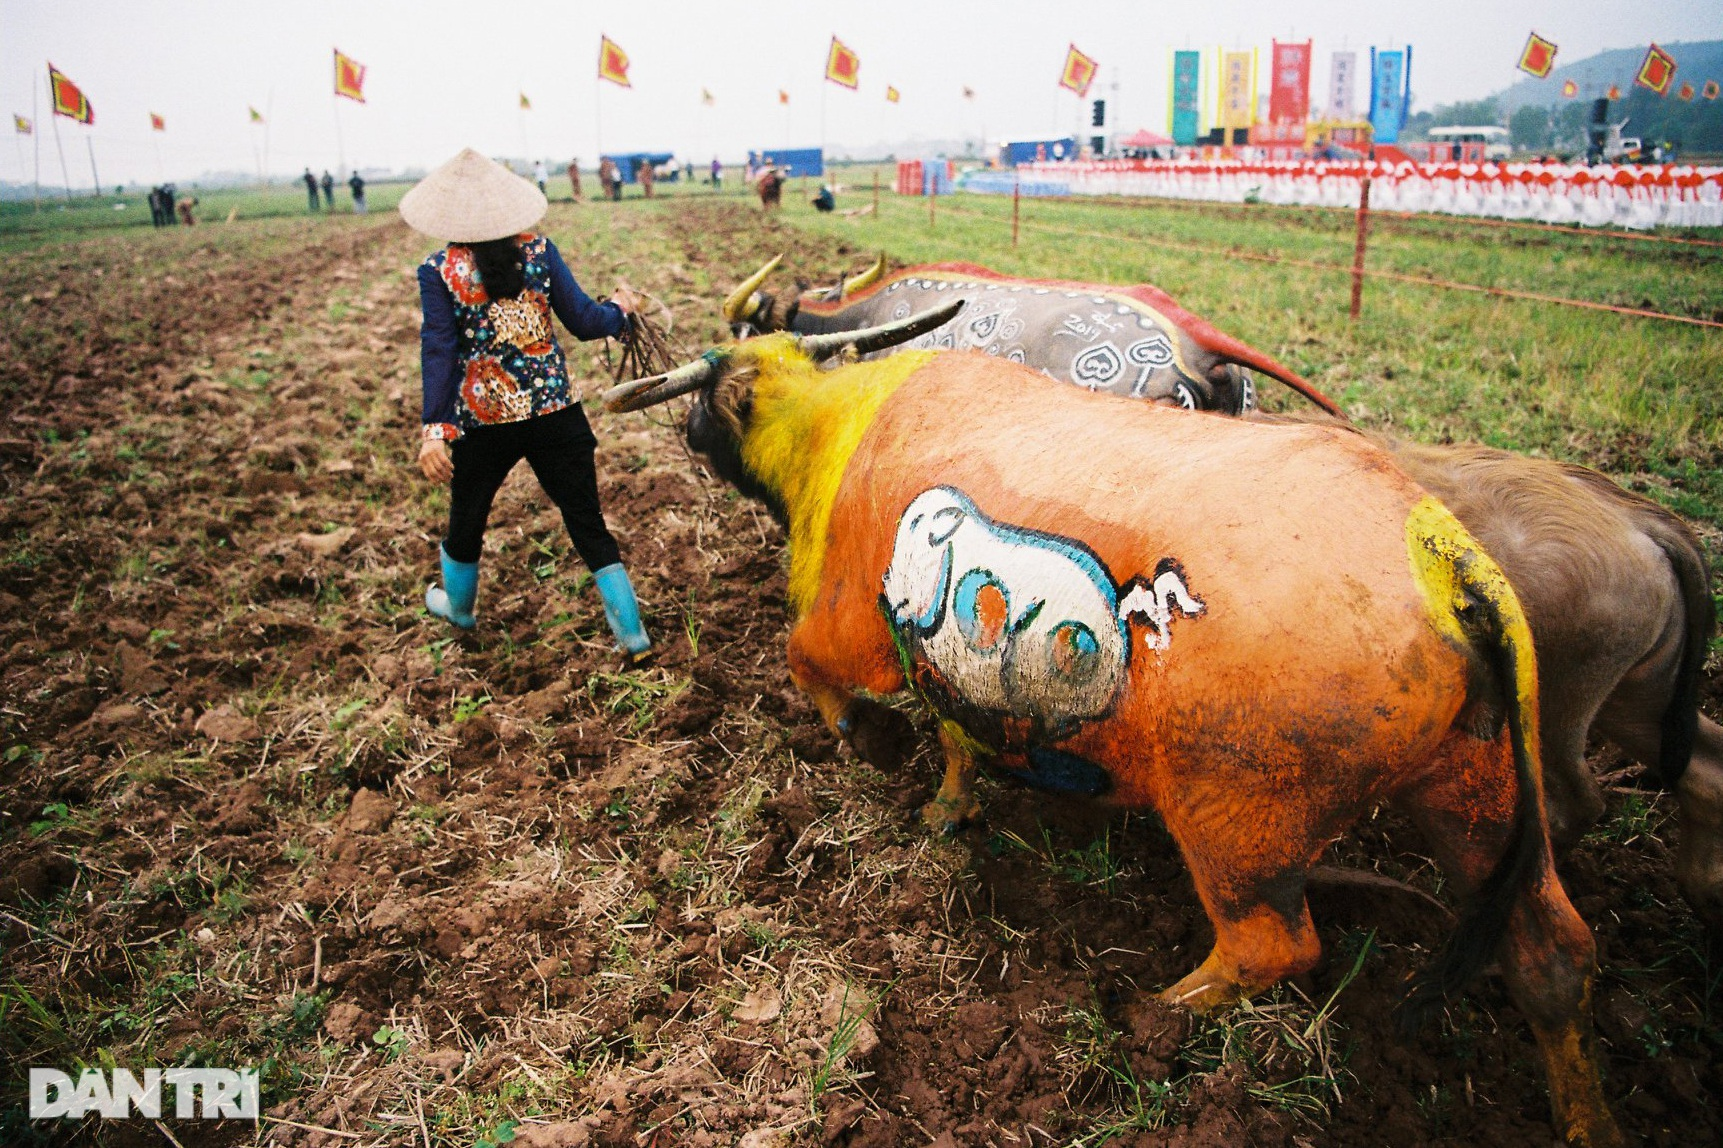 See the most beautiful festival in five buffaloes but be canceled due to the Covid-19-20 epidemic